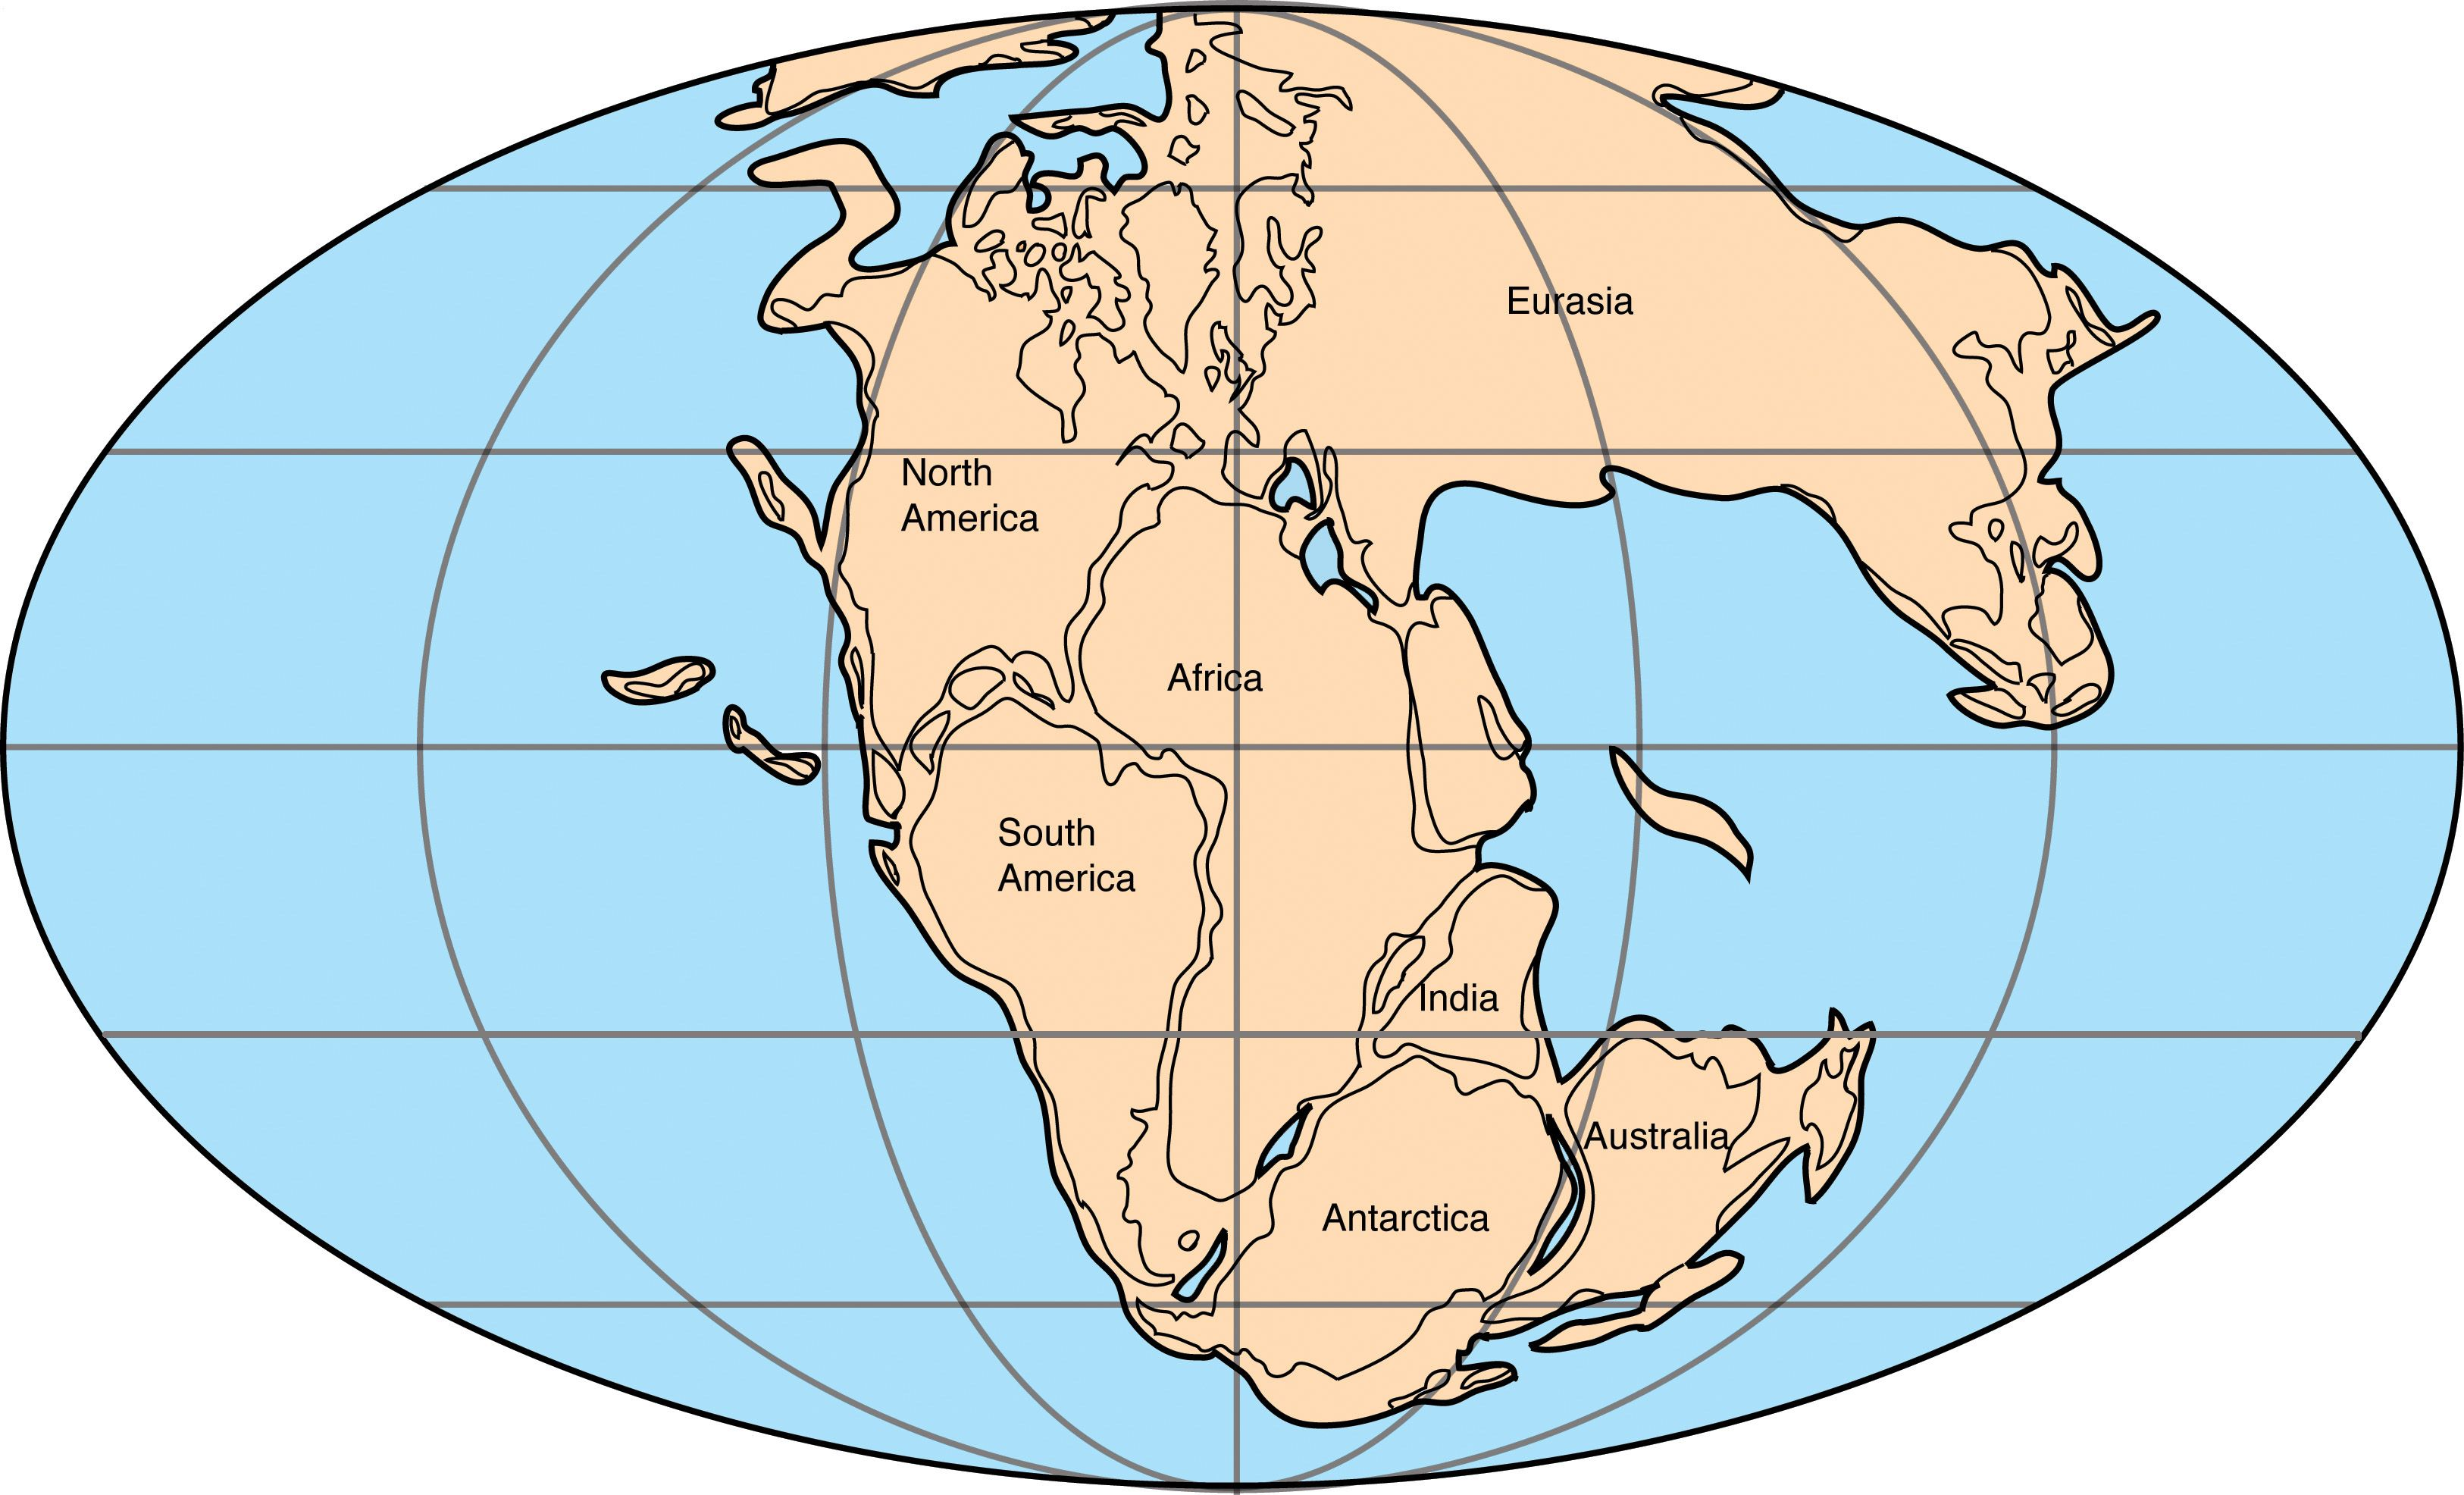 Worksheets Pangea Puzzle Worksheet pangaea entire earth pangea was a supercontinent that existed during the late paleozoic